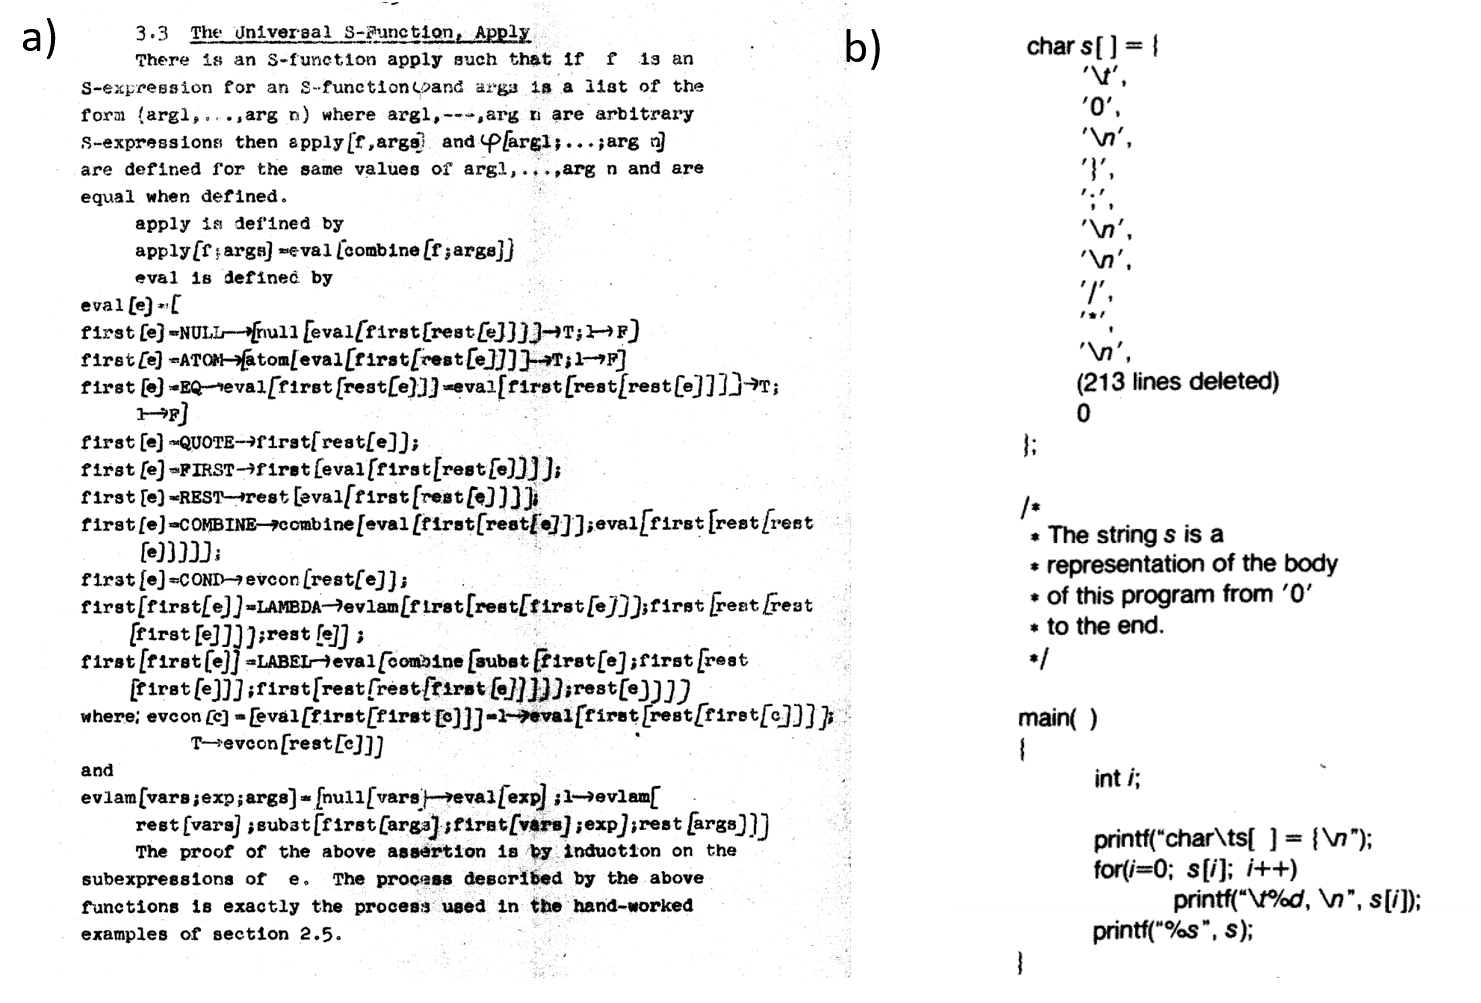 "8.3: a) A particularly elegant example of a ""meta-circular evaluator"" comes from John McCarthy's 1960 paper, where he defined the Lisp programming language and gave a Lisp function that evaluates an arbitrary Lisp program (see above). Lisp was not initially intended as a practical programming language and this example was merely meant as an illustration that the Lisp universal function is more elegant than the universal Turing machine. It was McCarthy's graduate student Steve Russell who suggested that it can be implemented. As McCarthy later recalled, ""I said to him, ho, ho, you're confusing theory with practice, this eval is intended for reading, not for computing. But he went ahead and did it. That is, he compiled the eval in my paper into IBM 704 machine code, fixing a bug, and then advertised this as a Lisp interpreter, which it certainly was"". b) A self-replicating C program from the classic essay of Thompson ."